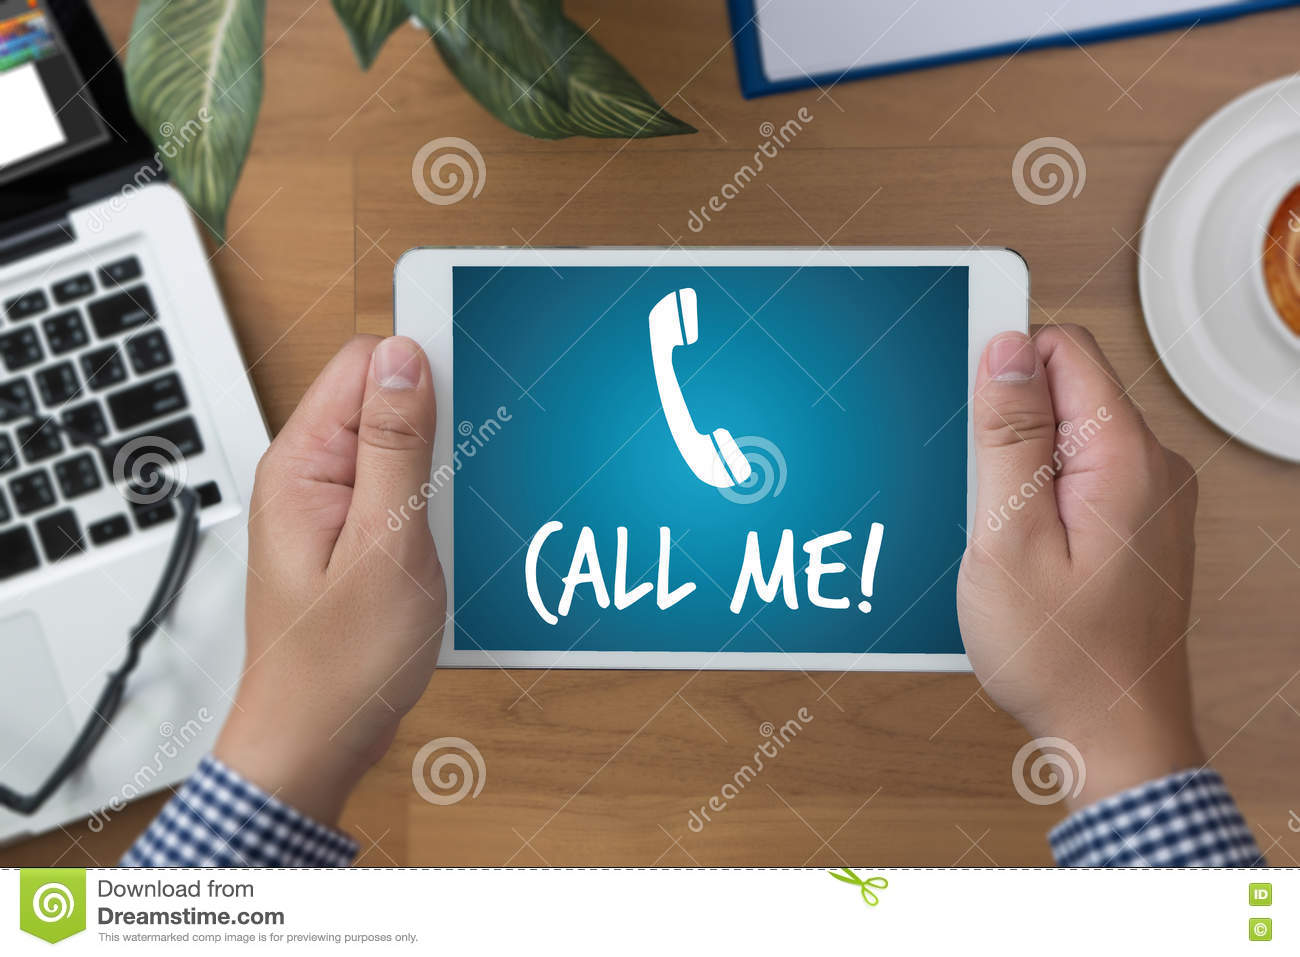 Call Me Contact Us Customer Service Support Question Please Call Stock Image Image Of Call Letter 80581637